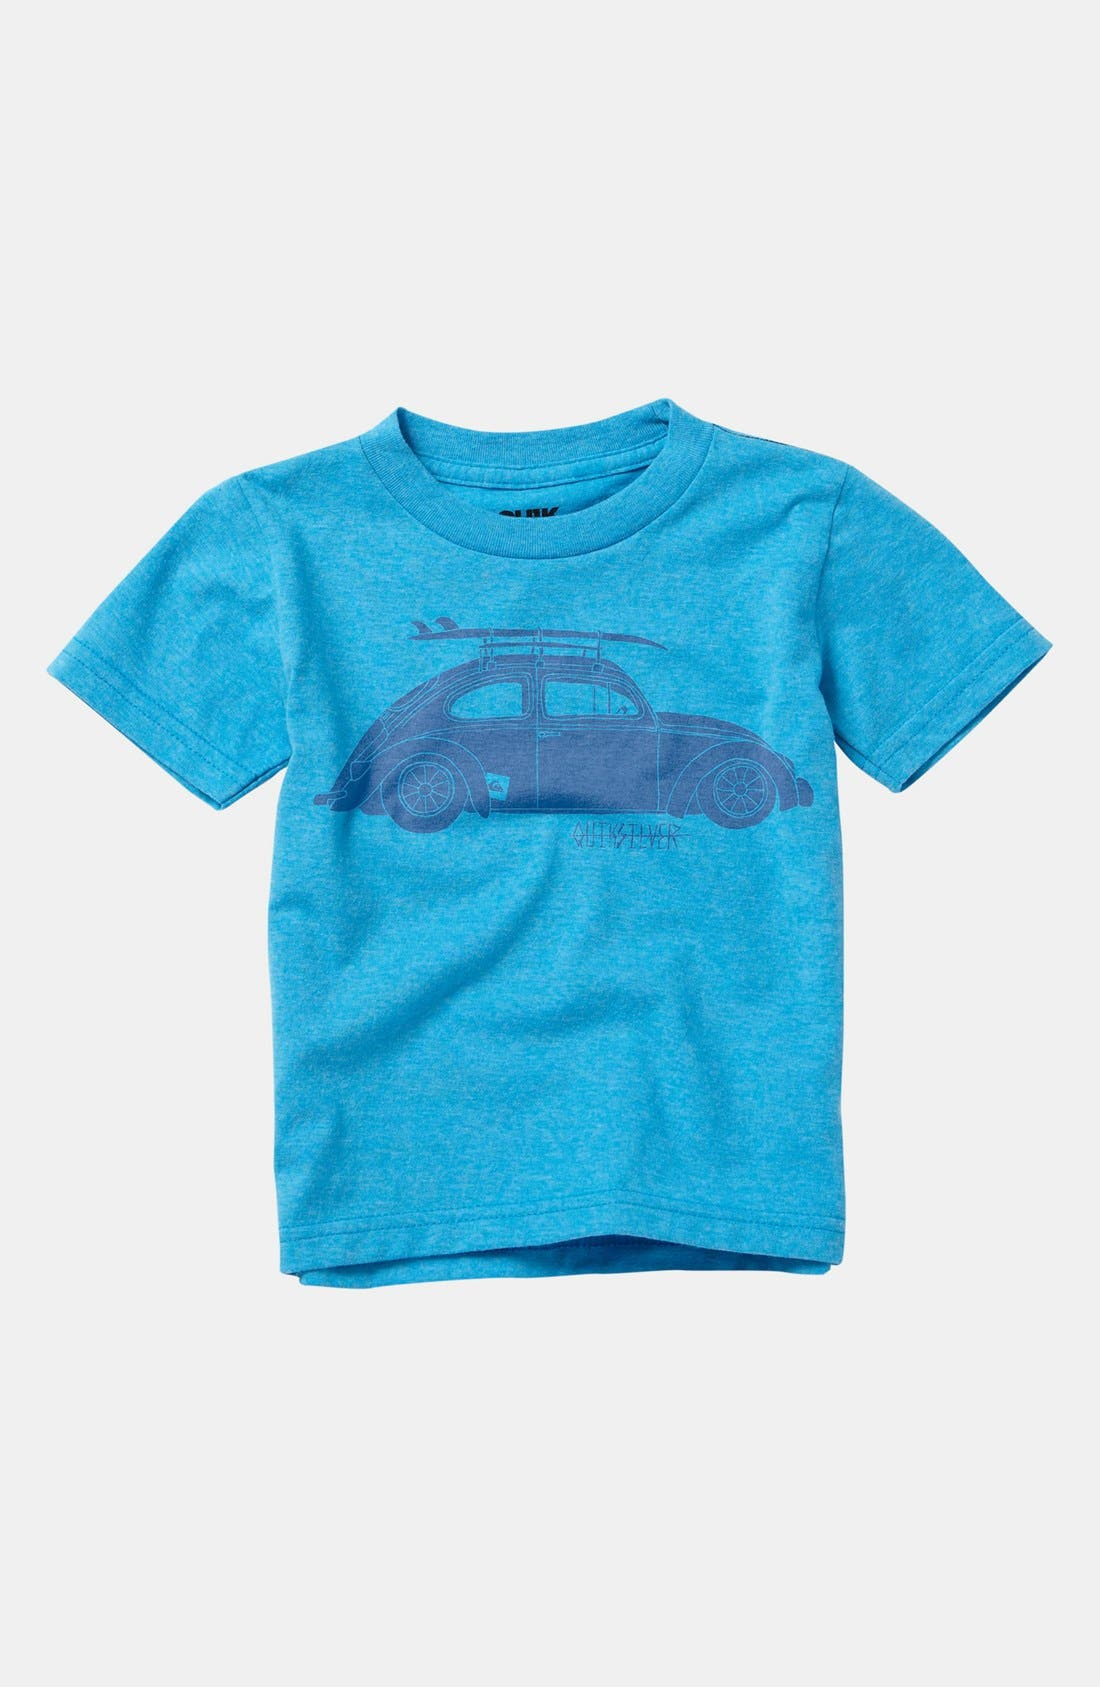 Main Image - Quiksilver 'Bugged Out' T-Shirt (Baby)